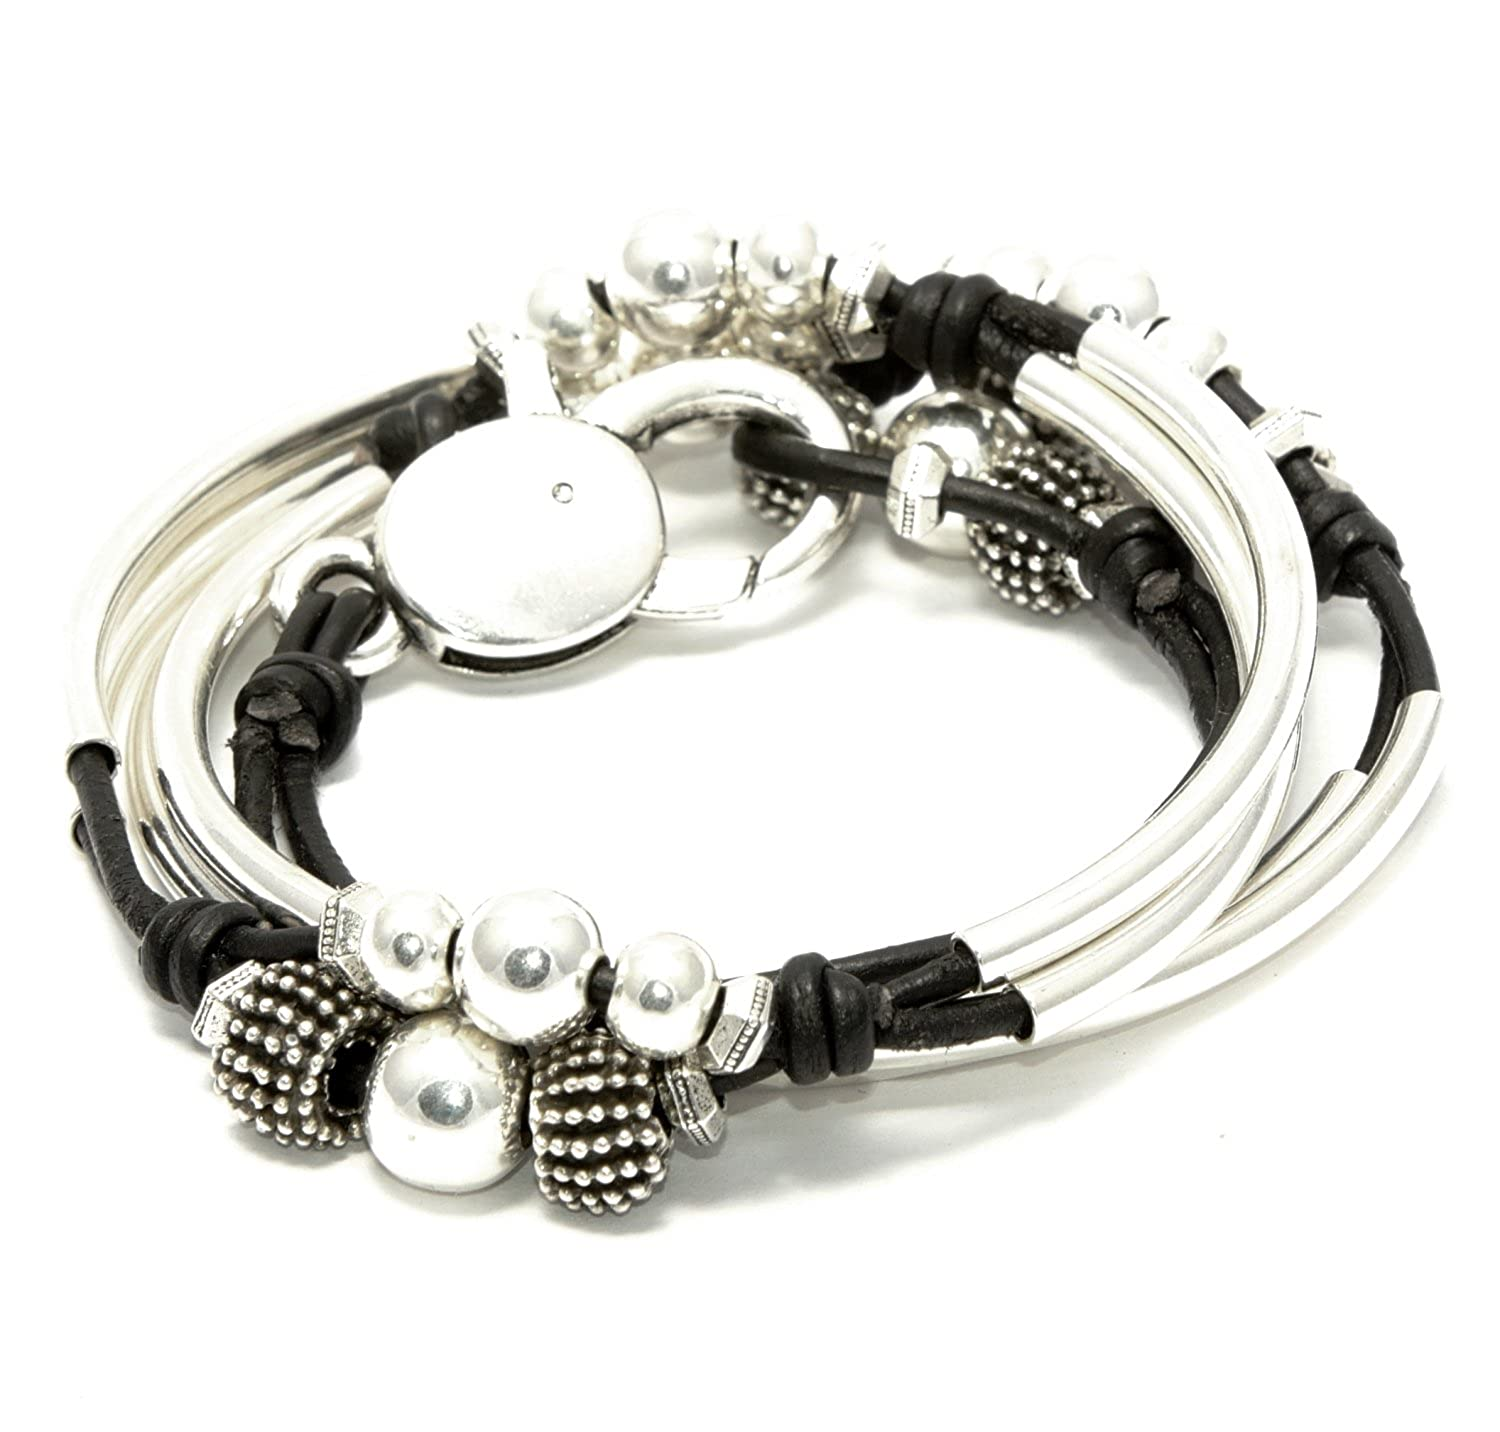 London Silverplated 2 Strand Natural Black Leather Wrap Bracelet